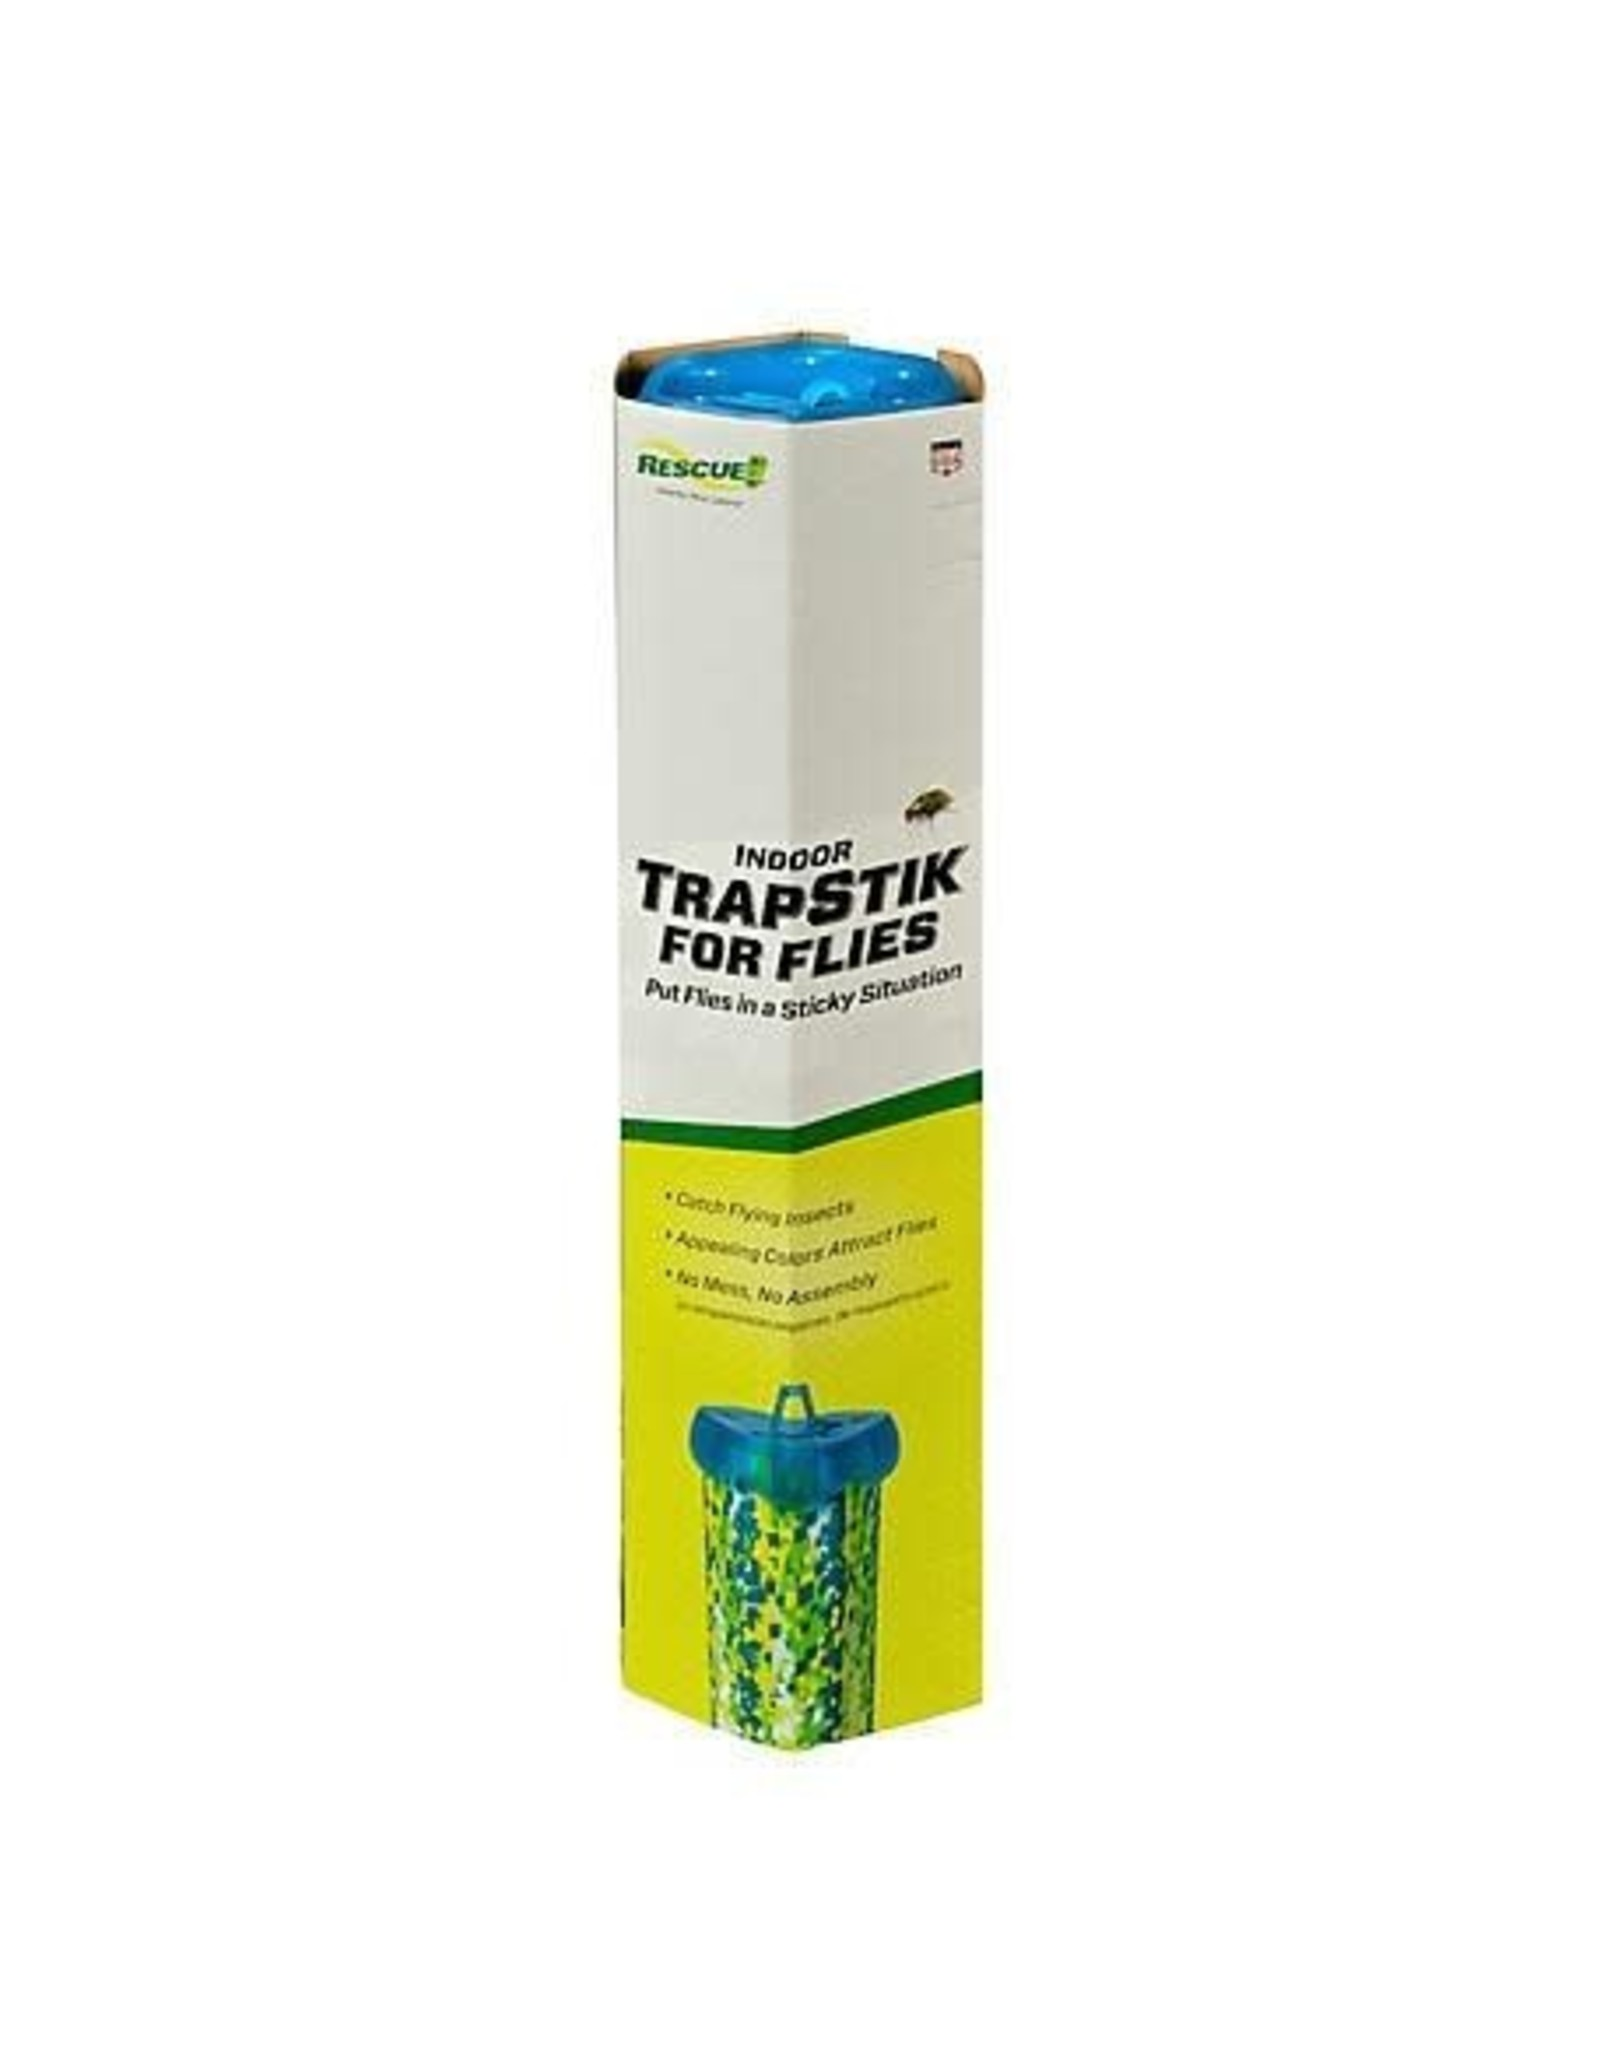 Rescue Trapstick for flies